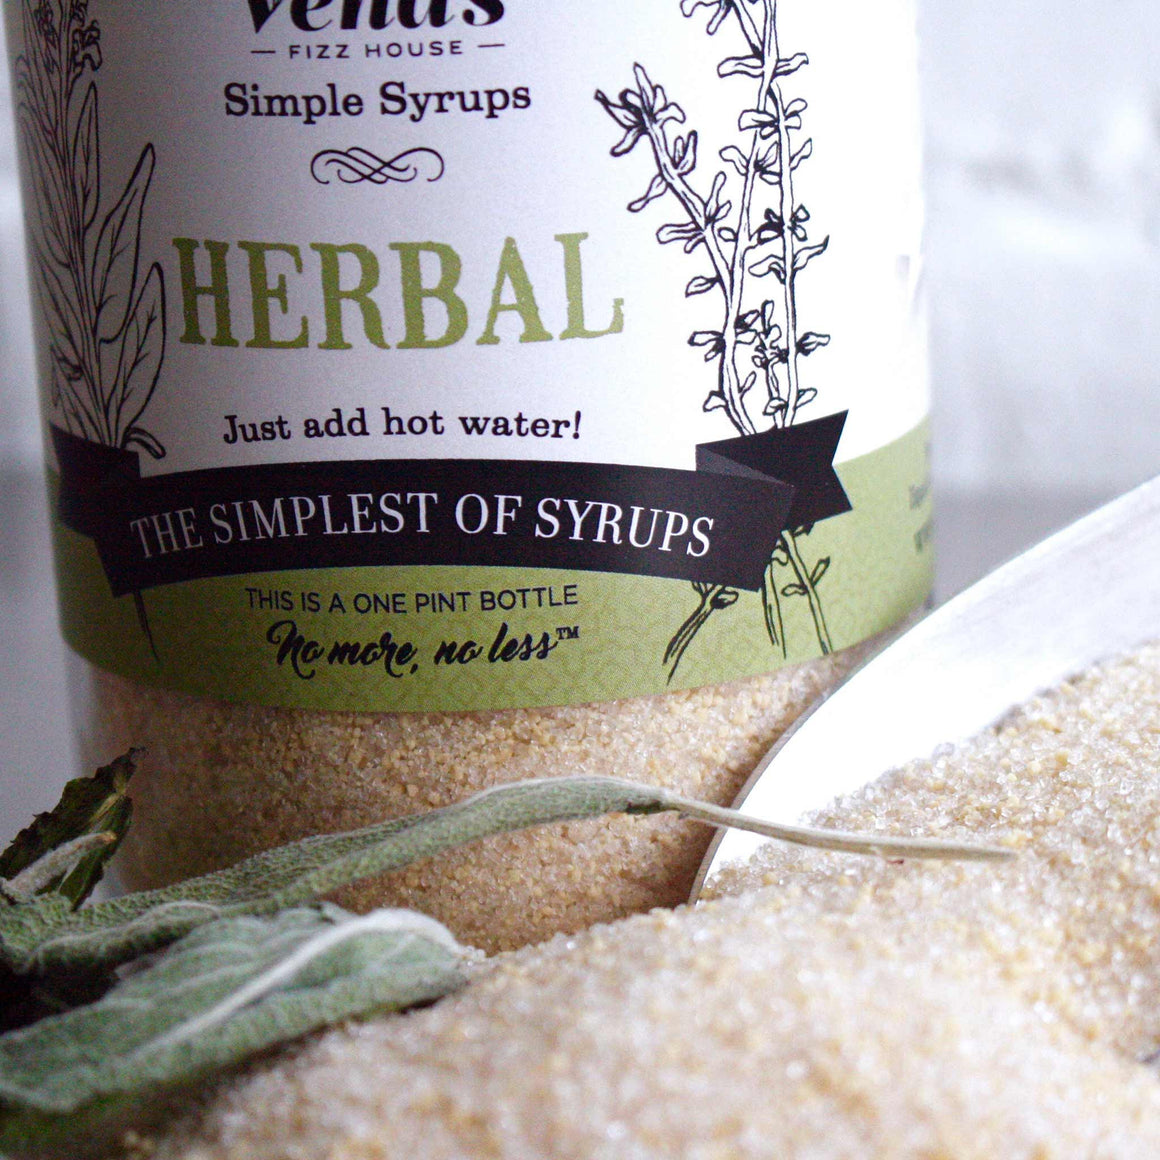 Vena's Herbal Simple Syrup